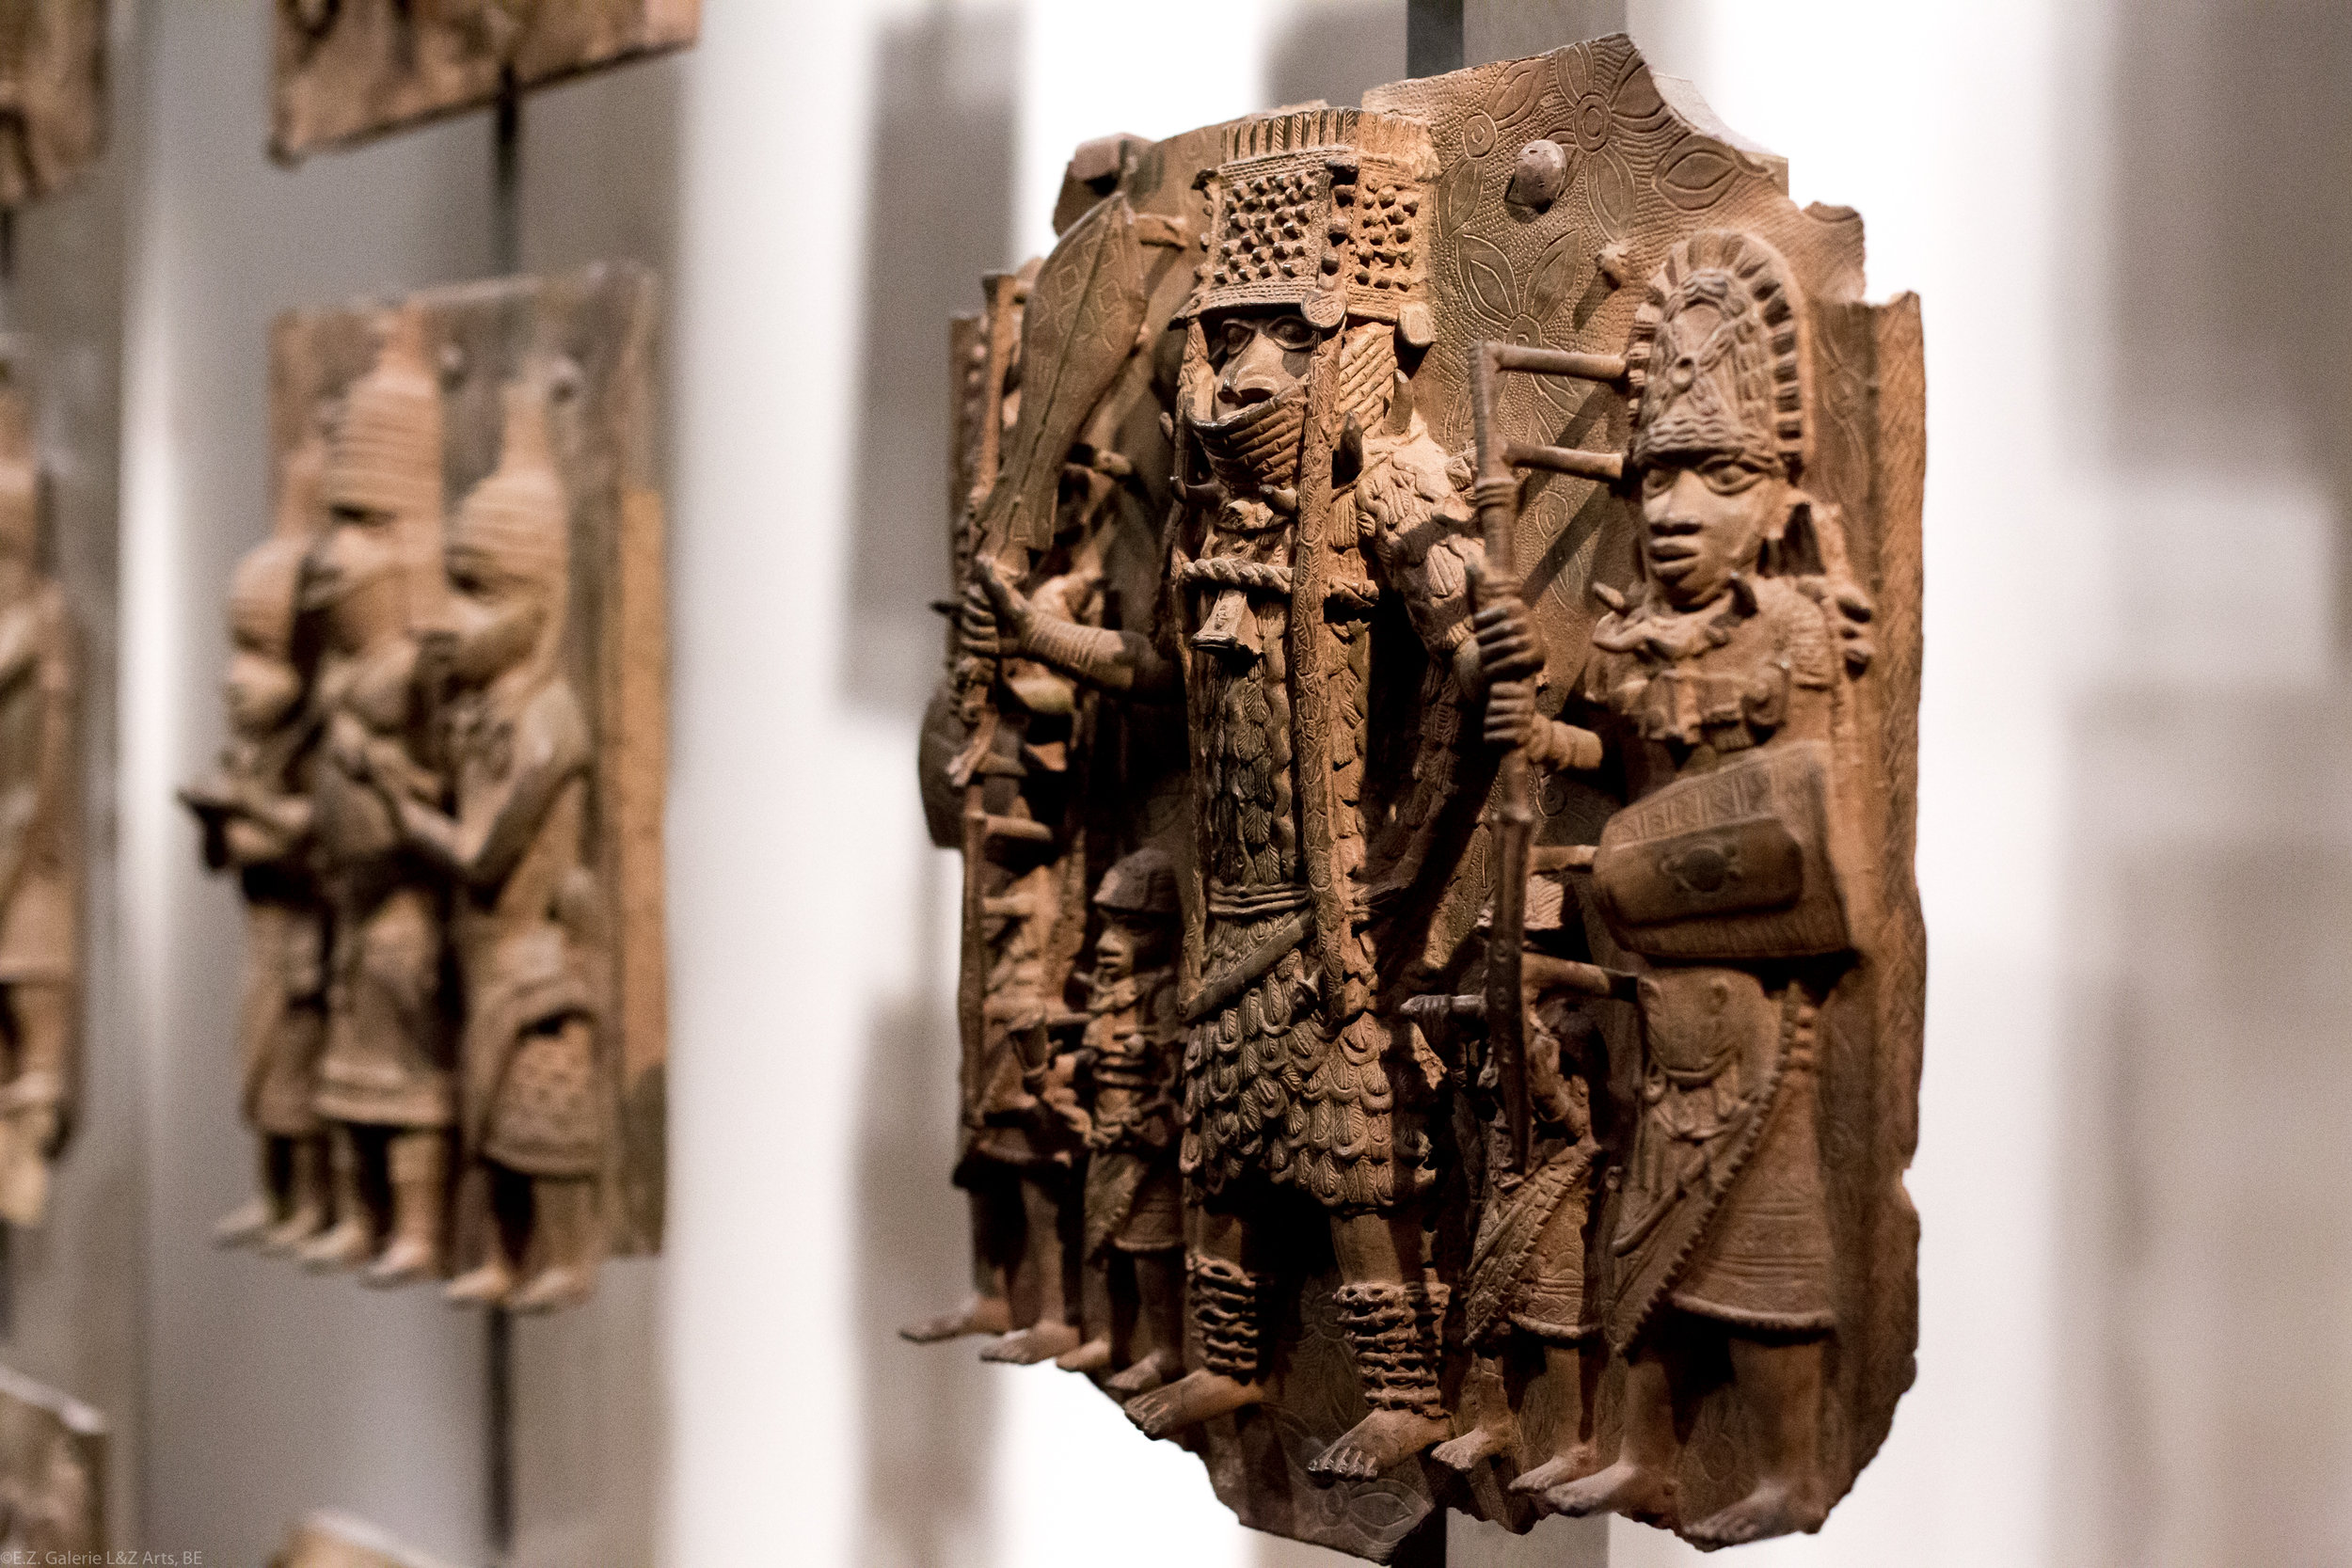 art-tribal-africain-londres-british-museum-sainsbury-galleries-bronze-benin-statue-masque-ivoire-africa-london-bini-edo-galerie-lz-arts-belgique-france-34.jpg